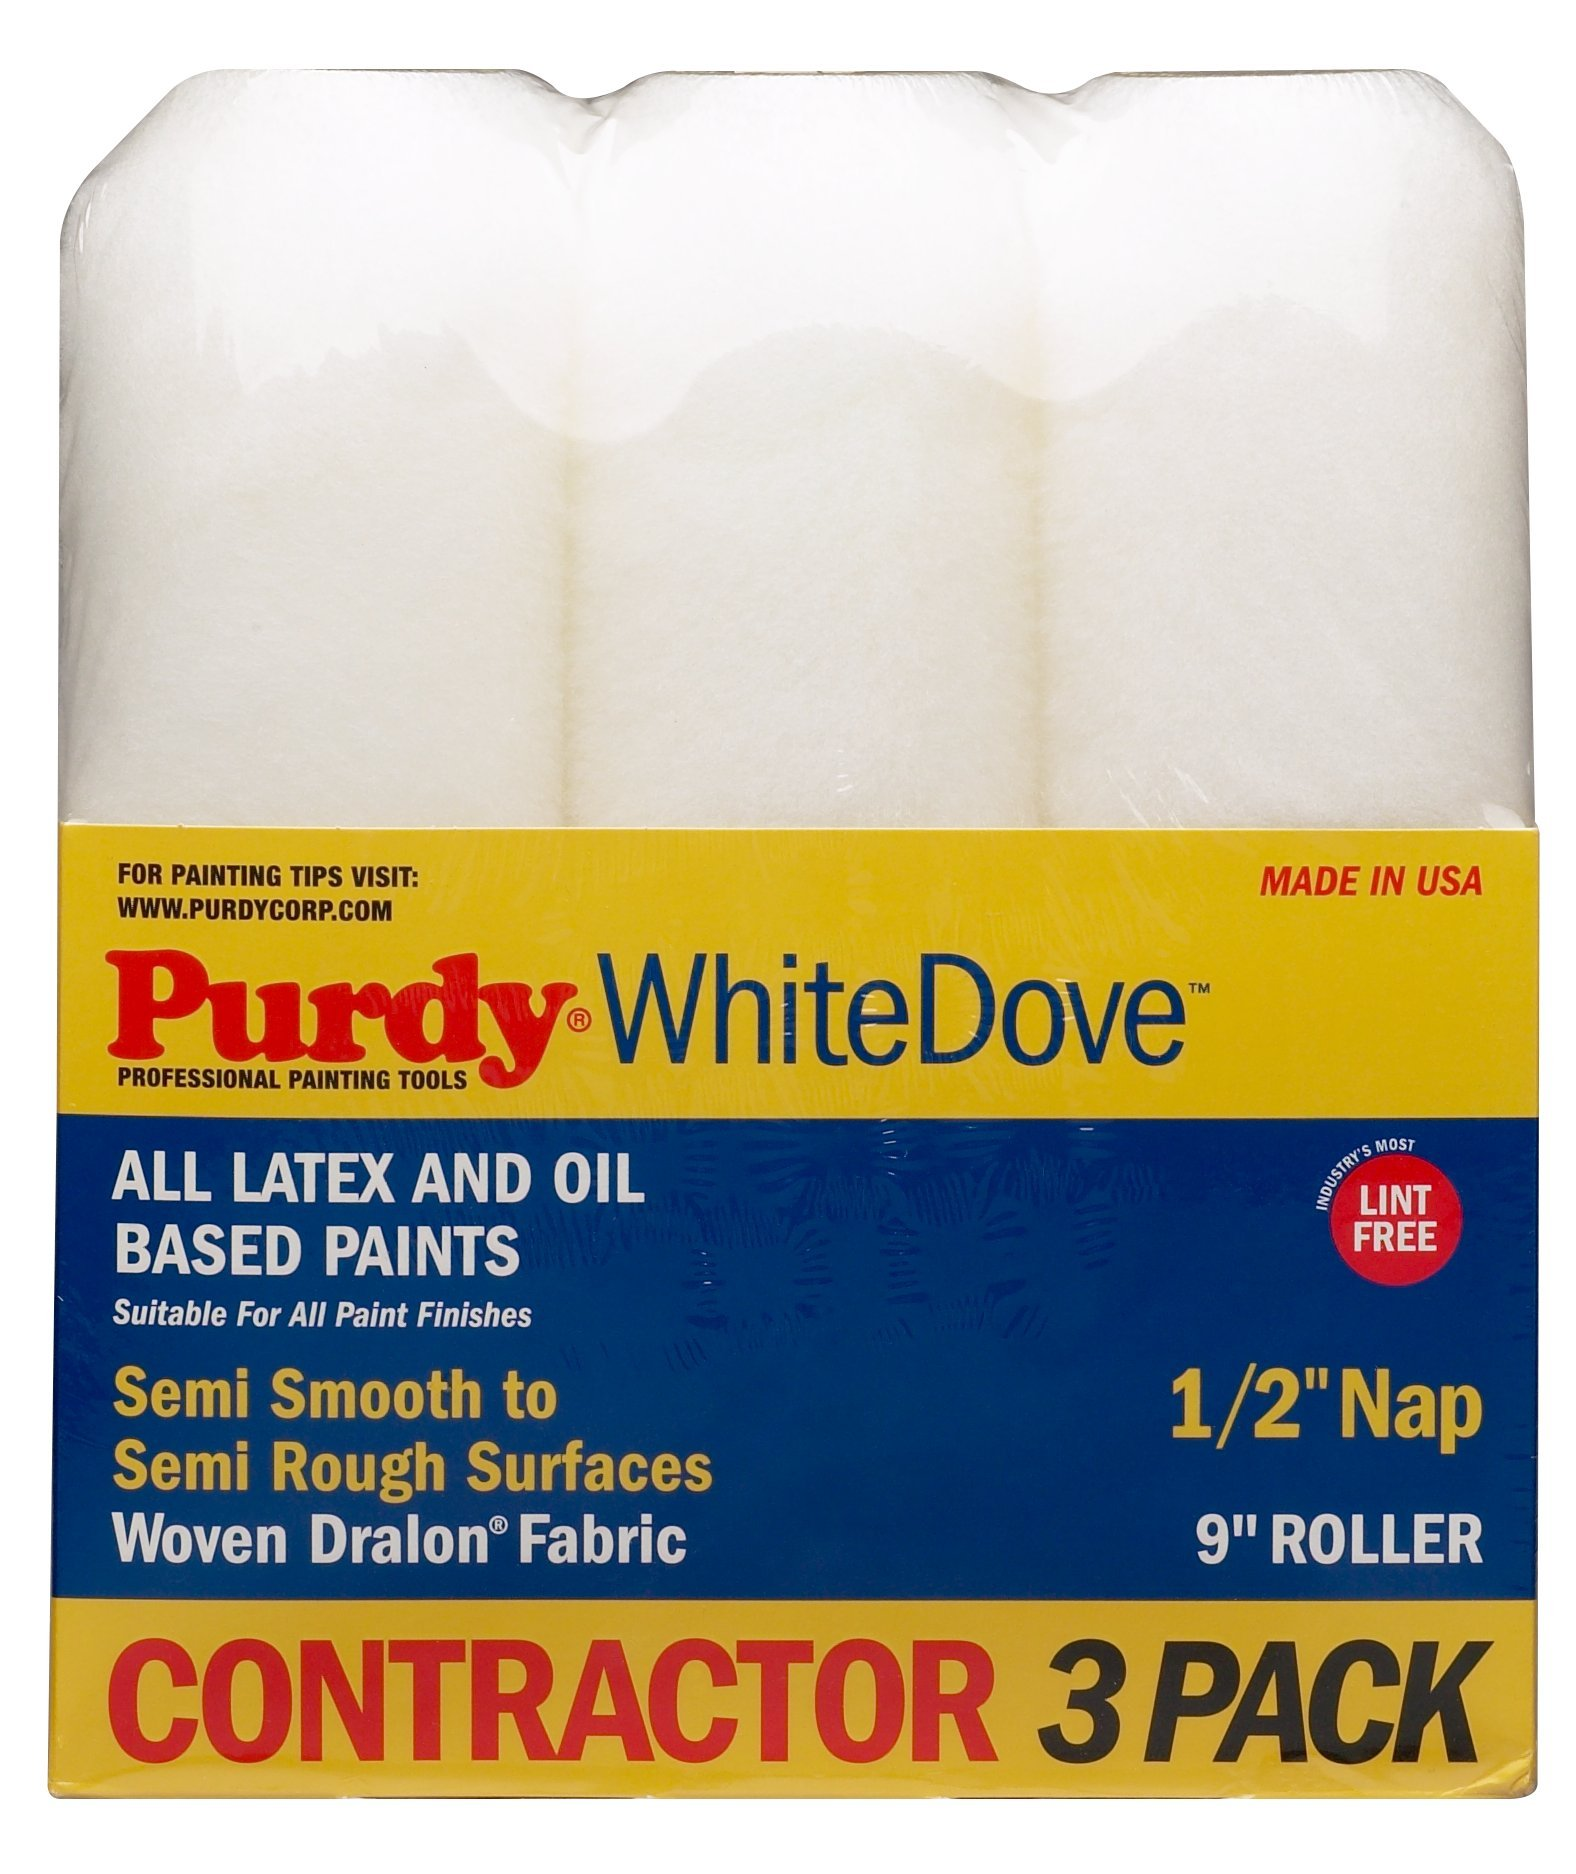 Purdy GIDDS-800630 3 Pack Roller Covers White Dove 9'' x 1/2'' Nap, 9 inch by Purdy